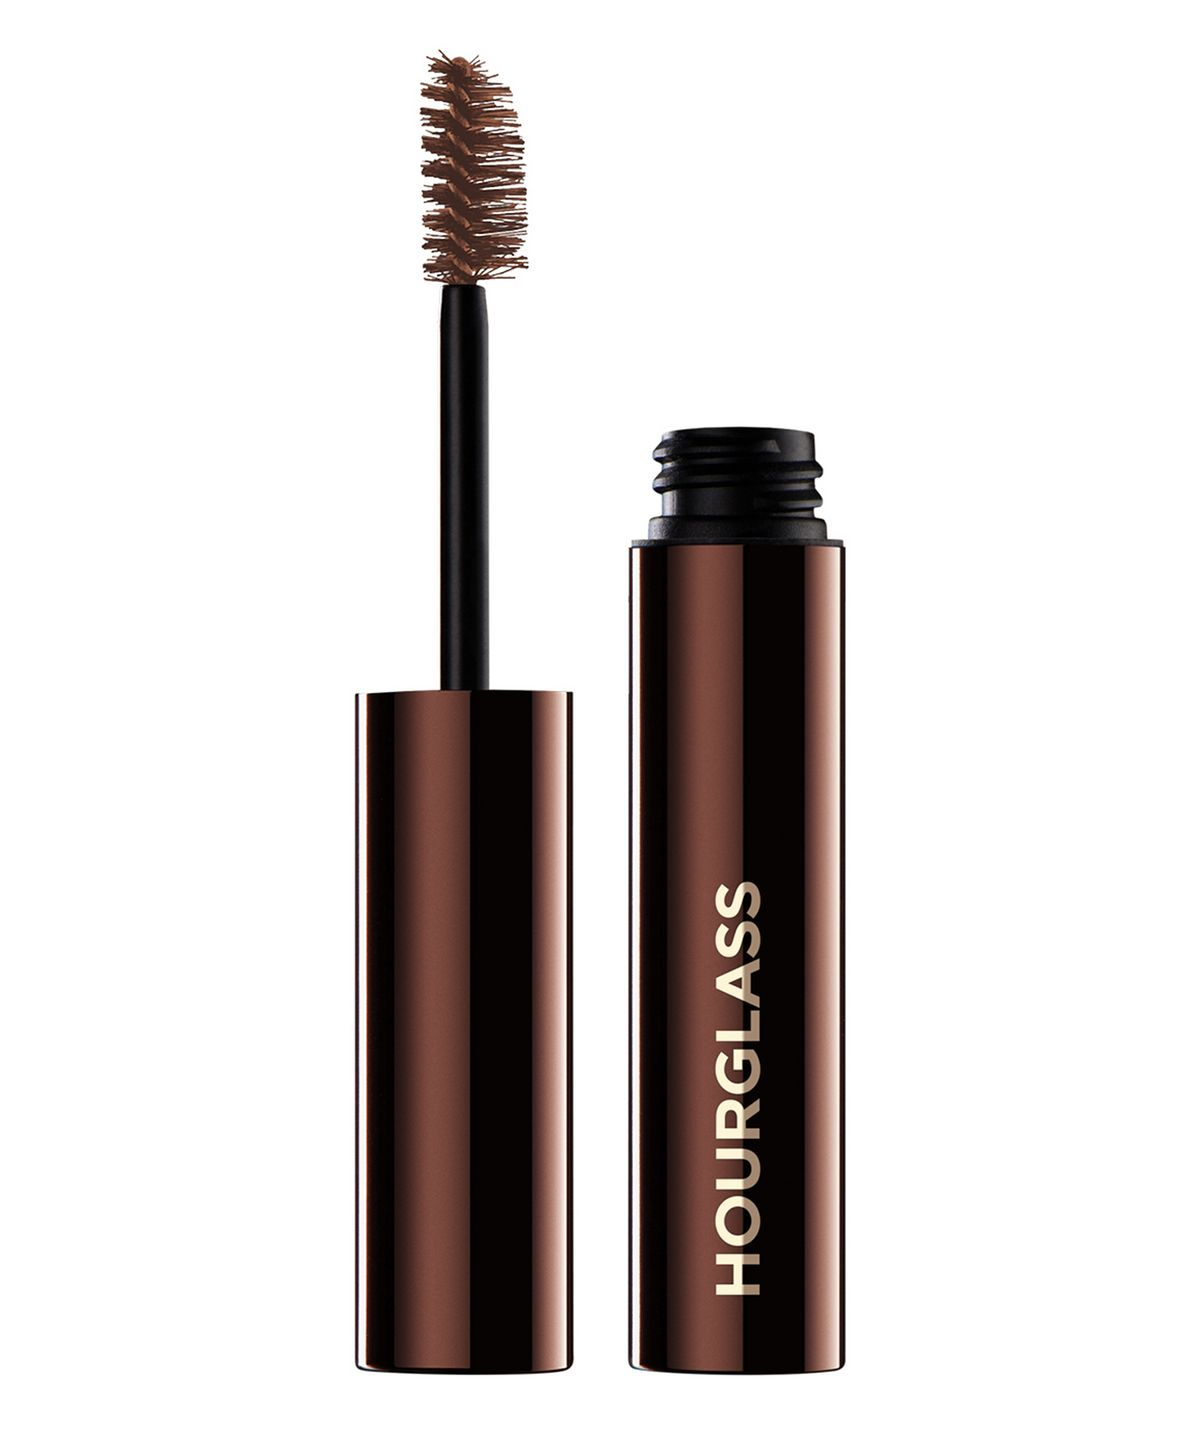 Hourglass Arch Brow Shaping Gel